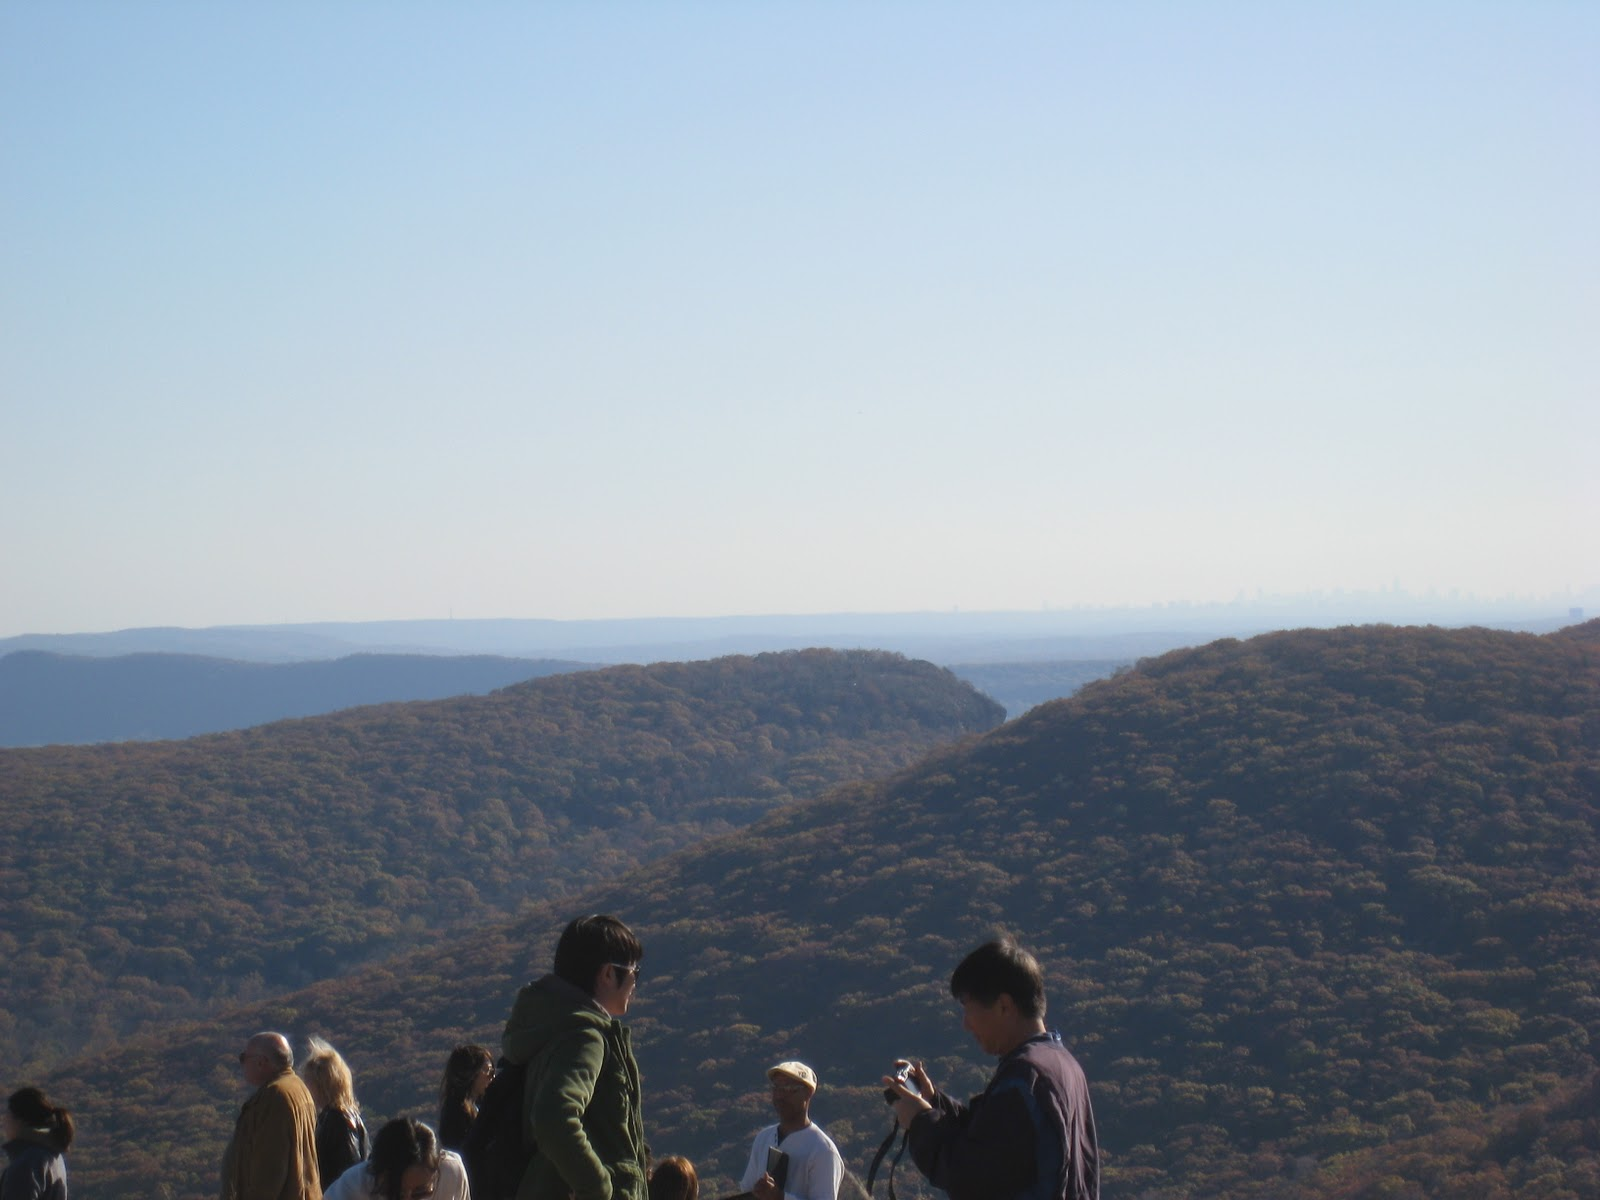 bear mountain singles Nyc active young singles is using eventbrite to organize 8 upcoming events   fall foliage hiking at bear mountain & oktoberfest - 10/08/2018 columbus day.